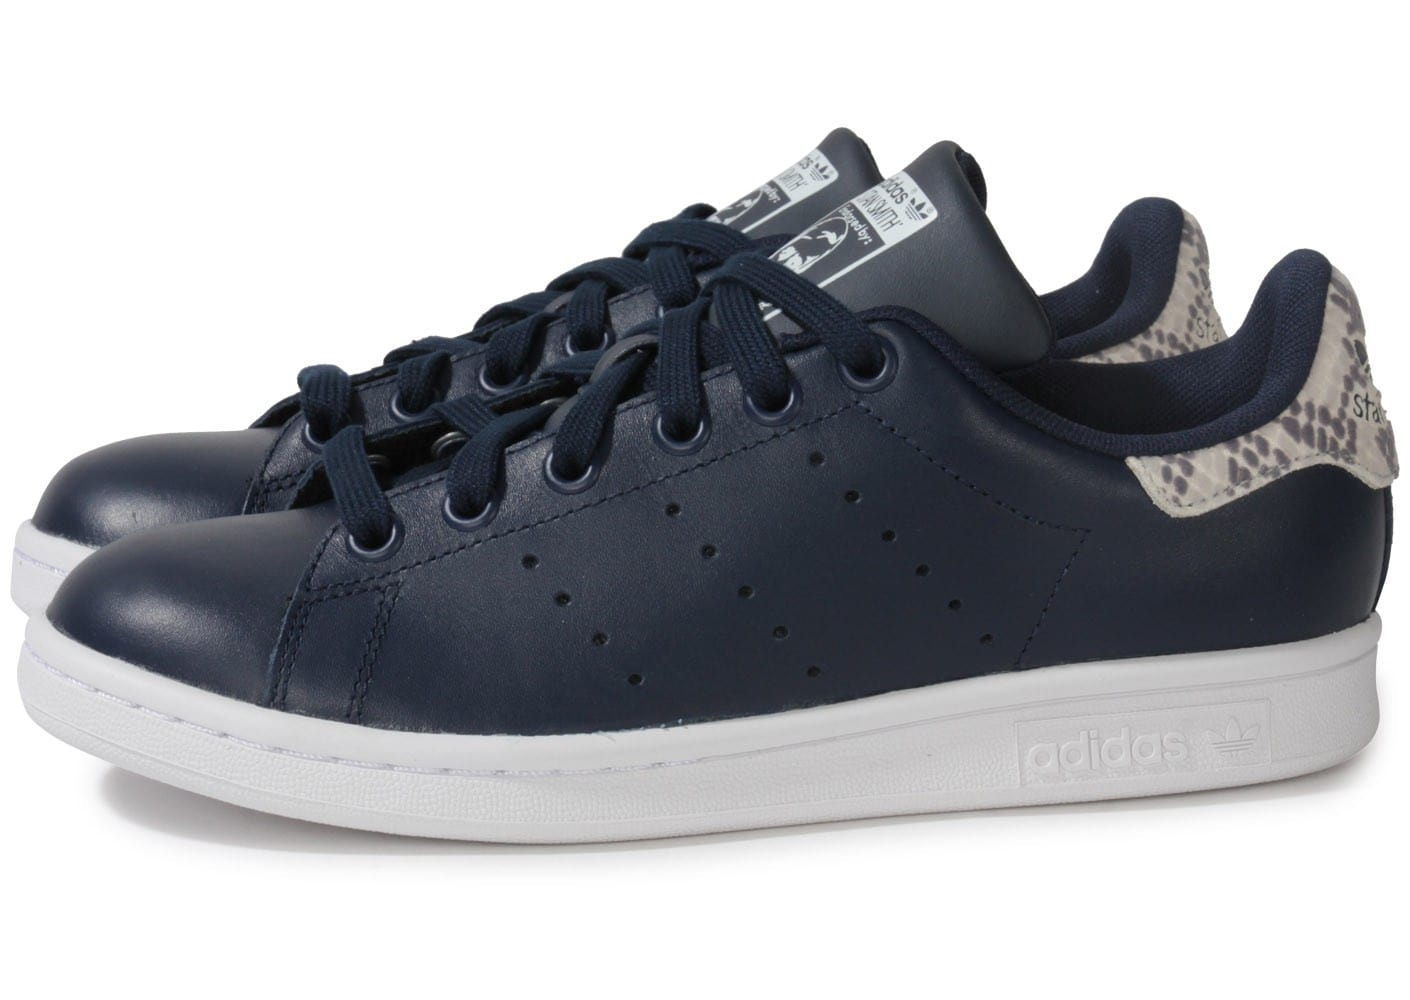 adidas stan smith bleu marine animal chaussures adidas chausport. Black Bedroom Furniture Sets. Home Design Ideas